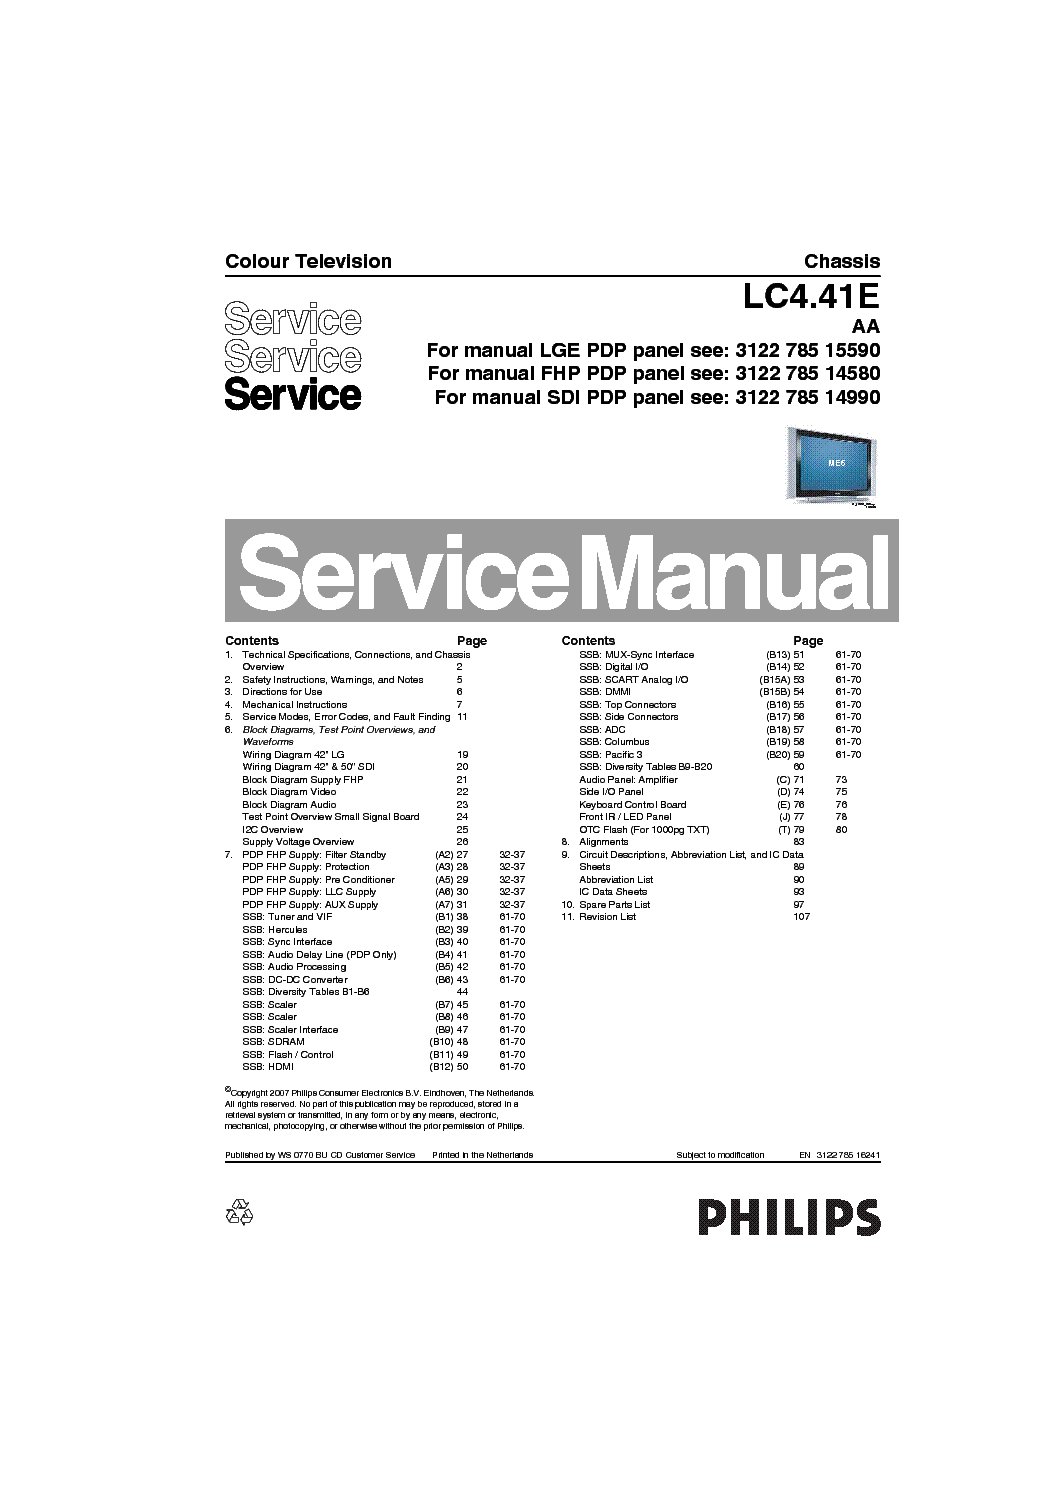 PHILIPS CHASSIS-LC4.41E-AA SM service manual